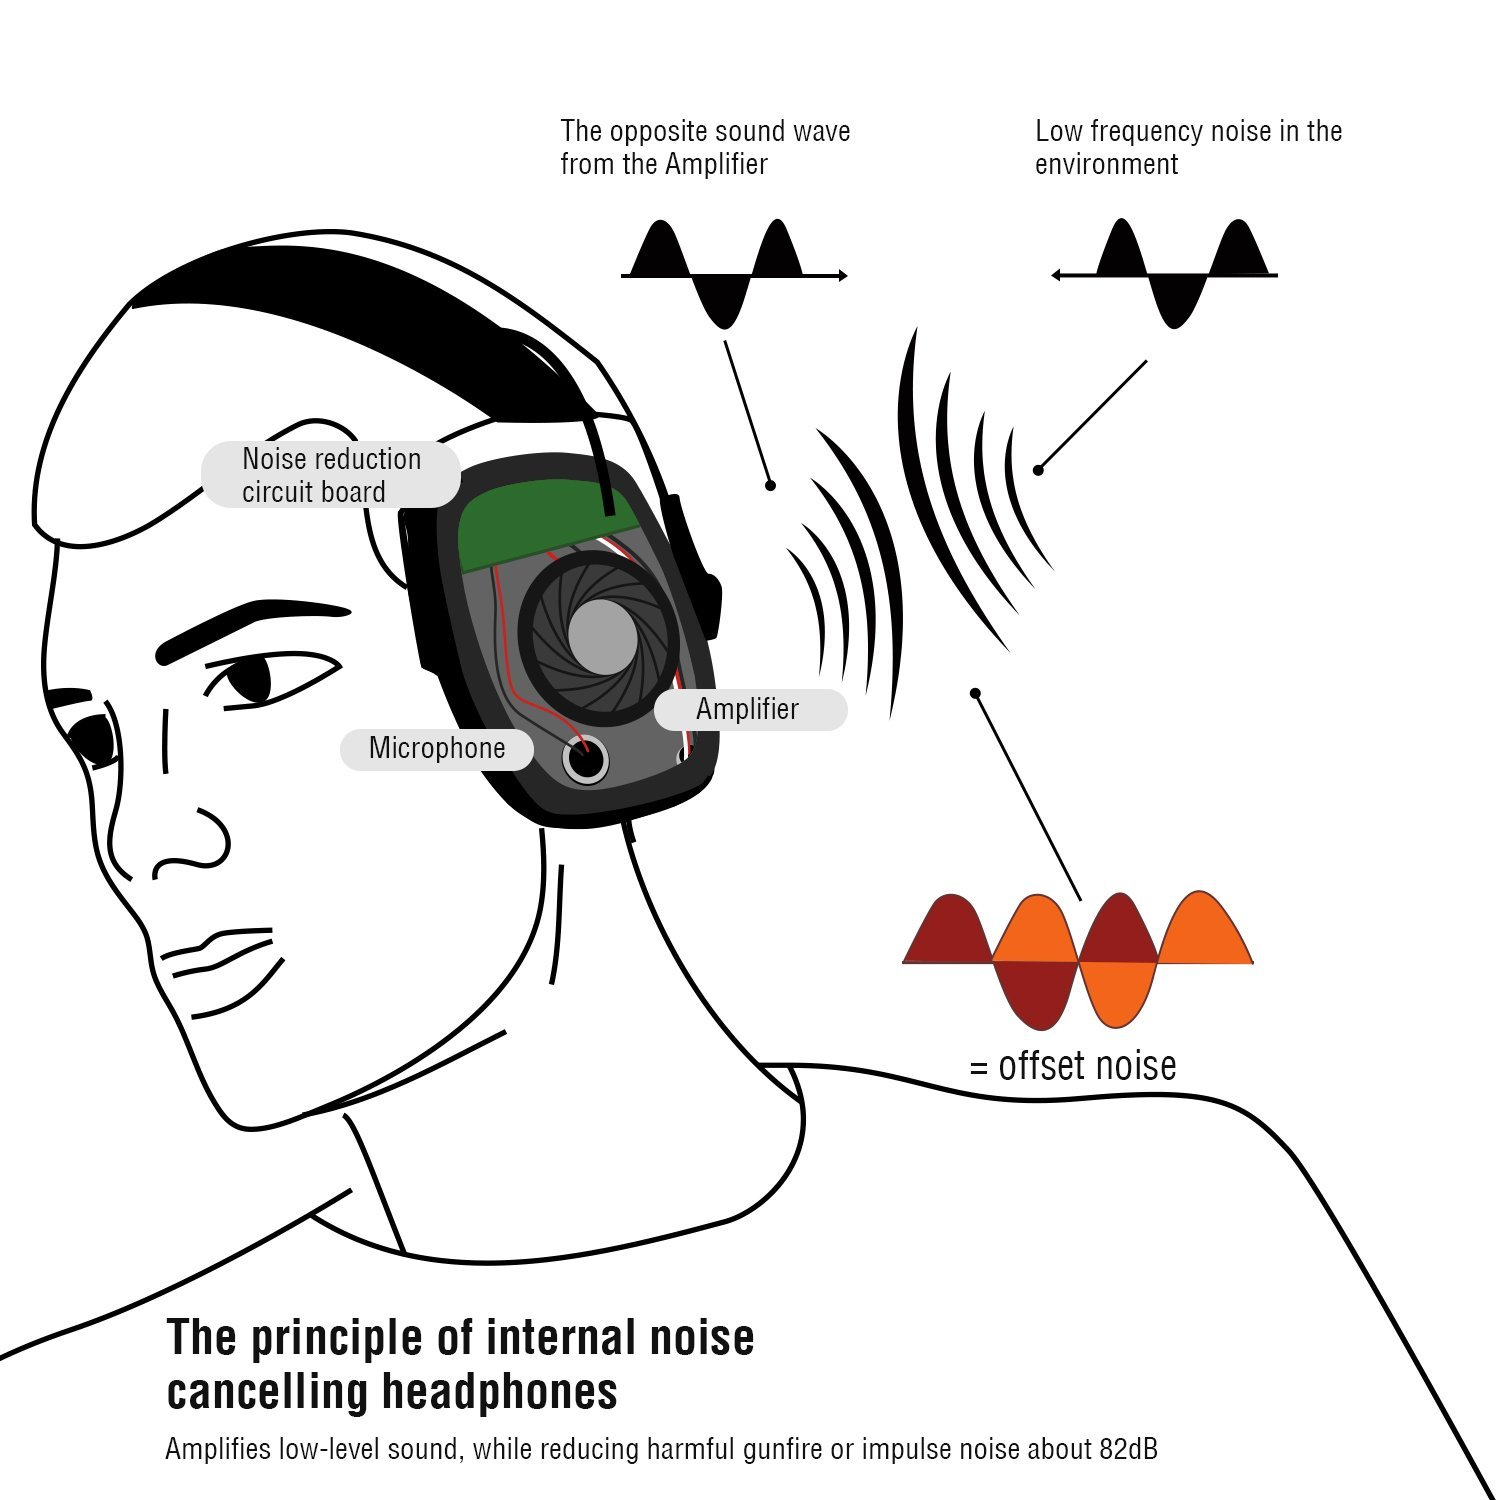 Awesafe Electronic Shooting Earmuff, Awesafe GF01 Noise Reduction Sound Amplification Electronic Safety Ear Muffs, Ear Protection, NRR 22 dB, Ideal for Shooting and Hunting … Camon by awesafe  (Image #3)